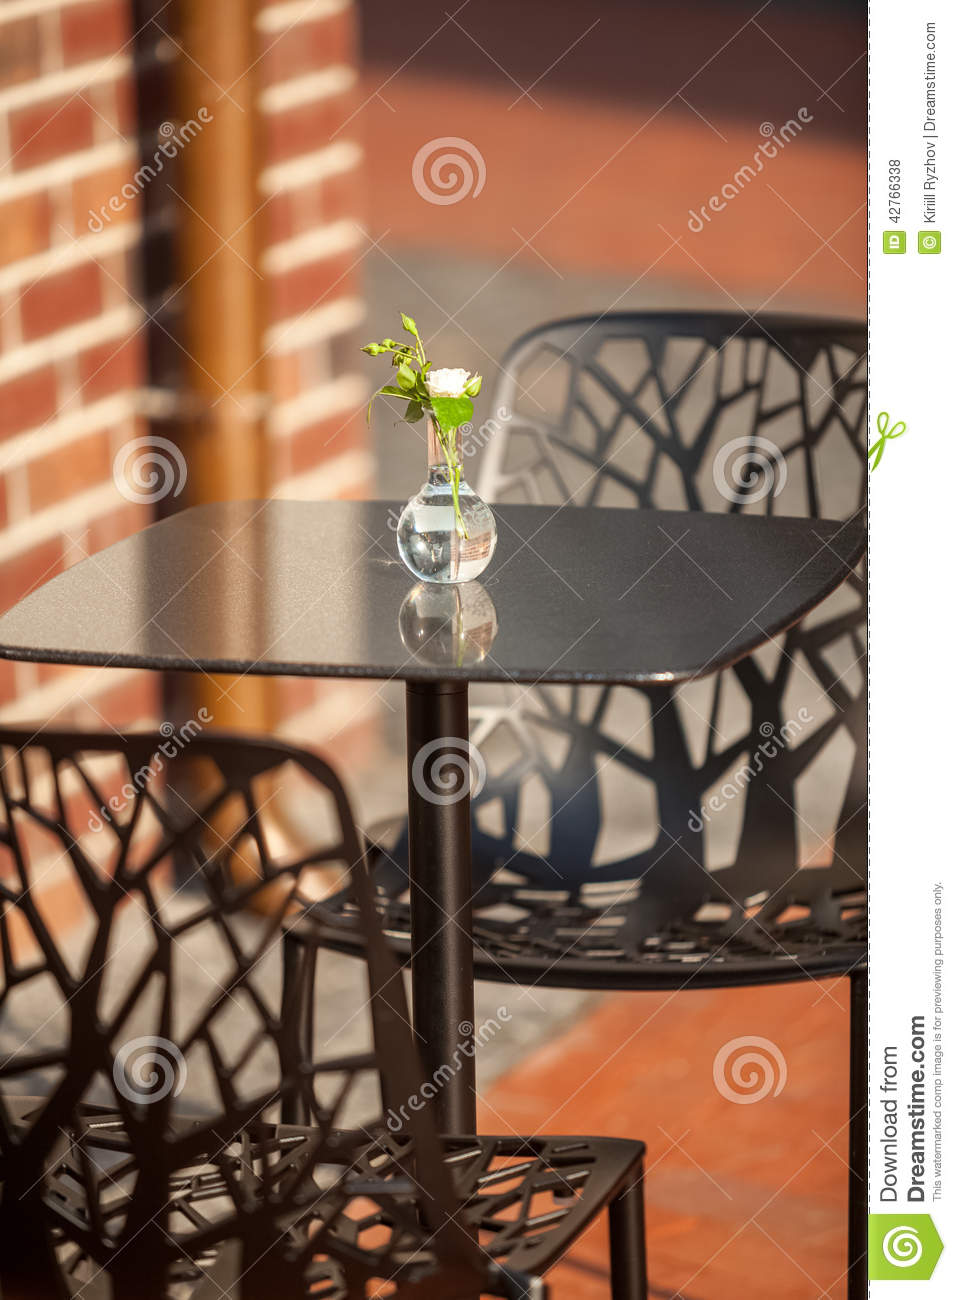 White flower in vase standing on table at outdoor cafe